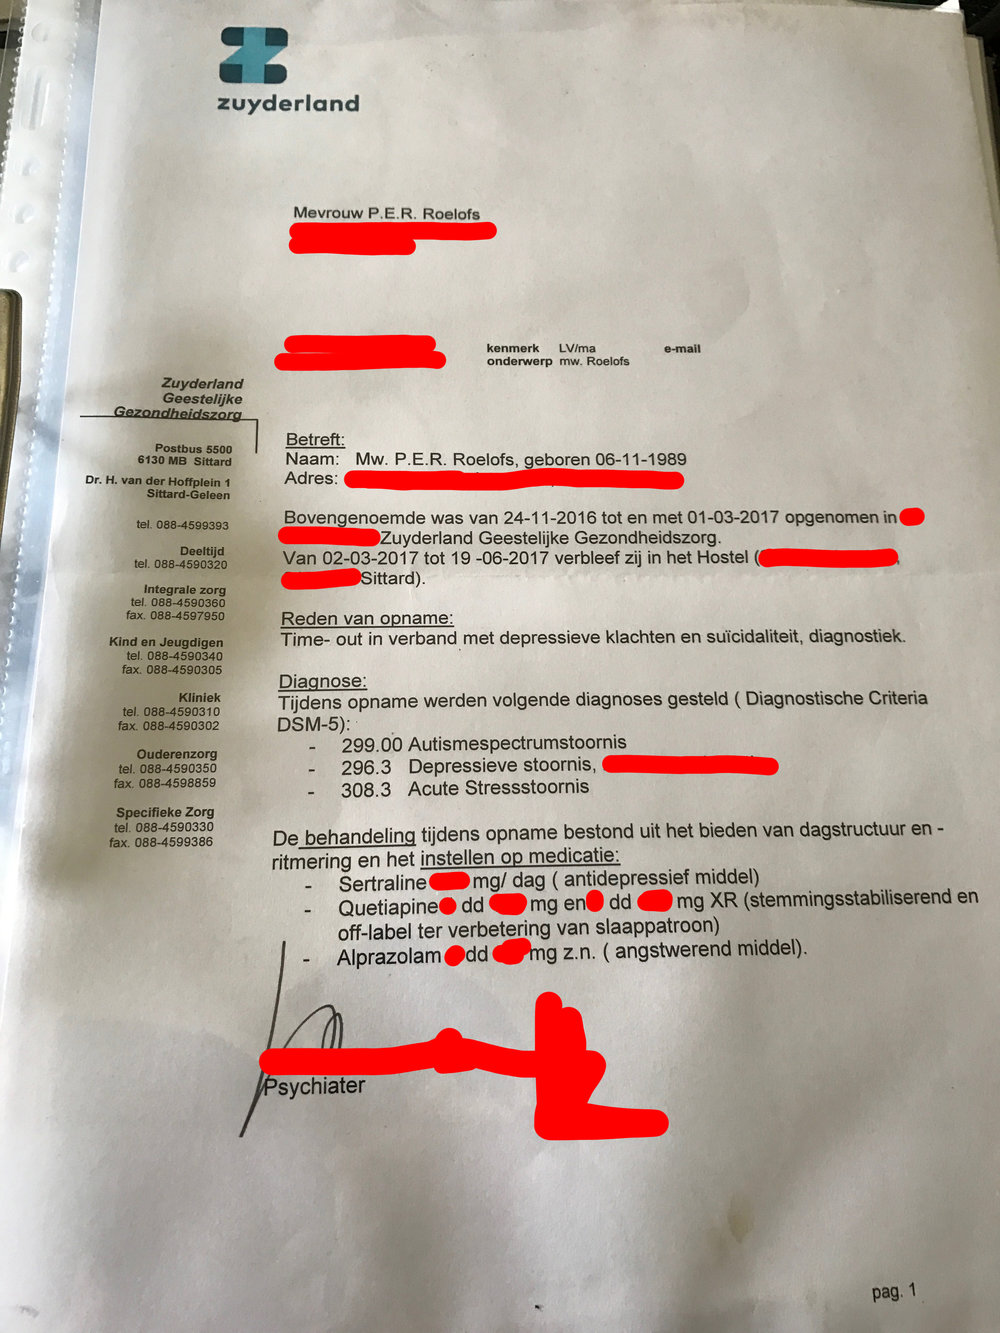 The letter my psychiatrist wrote for the police concerning my hospitalisation & diagnosis. It's in Dutch, but it's pretty easy to read. As you can see, I was diagnosed with ASD, Depression and Acute Stress Disorder. No sign of psychosis. The anti-psychotic that's mentioned, has 'off-label' mentioned, to point out it was used as a mood stabilizer and for sleeping problems.